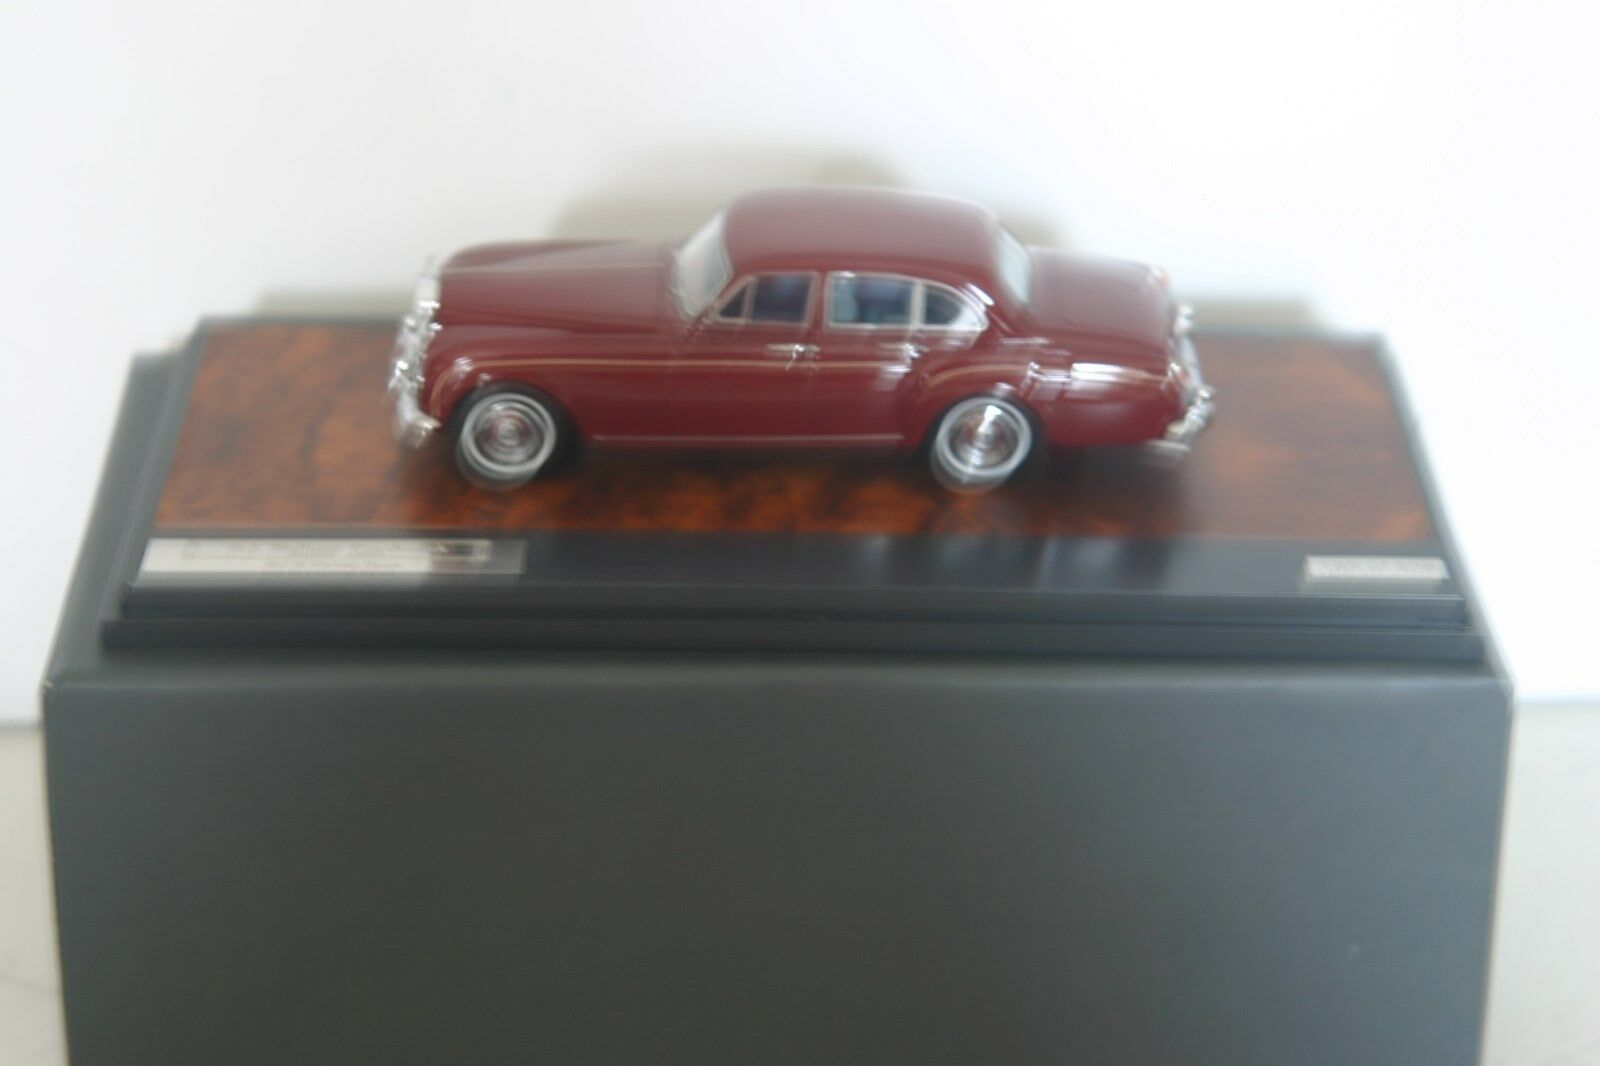 MATRIX 11705-082 ROLLS ROYCE H J MULLINER SCIII FLYING SPUR 1965, DARK RED